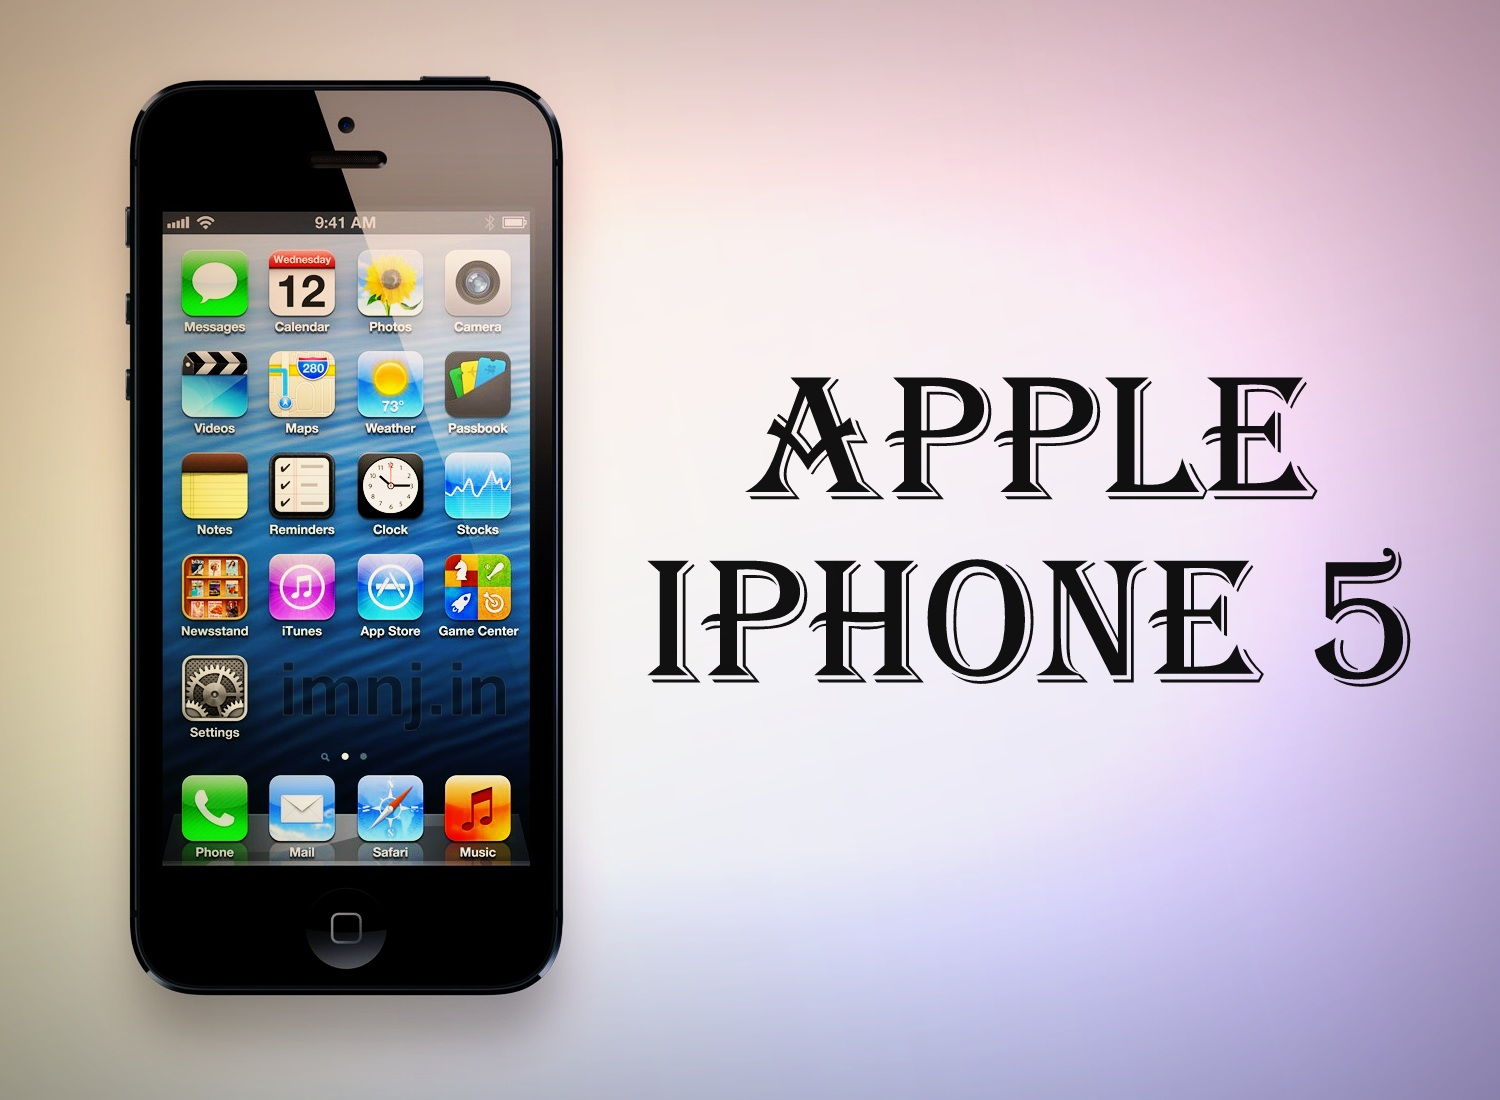 Apple Iphone - Specification, Iphone Price In India ...